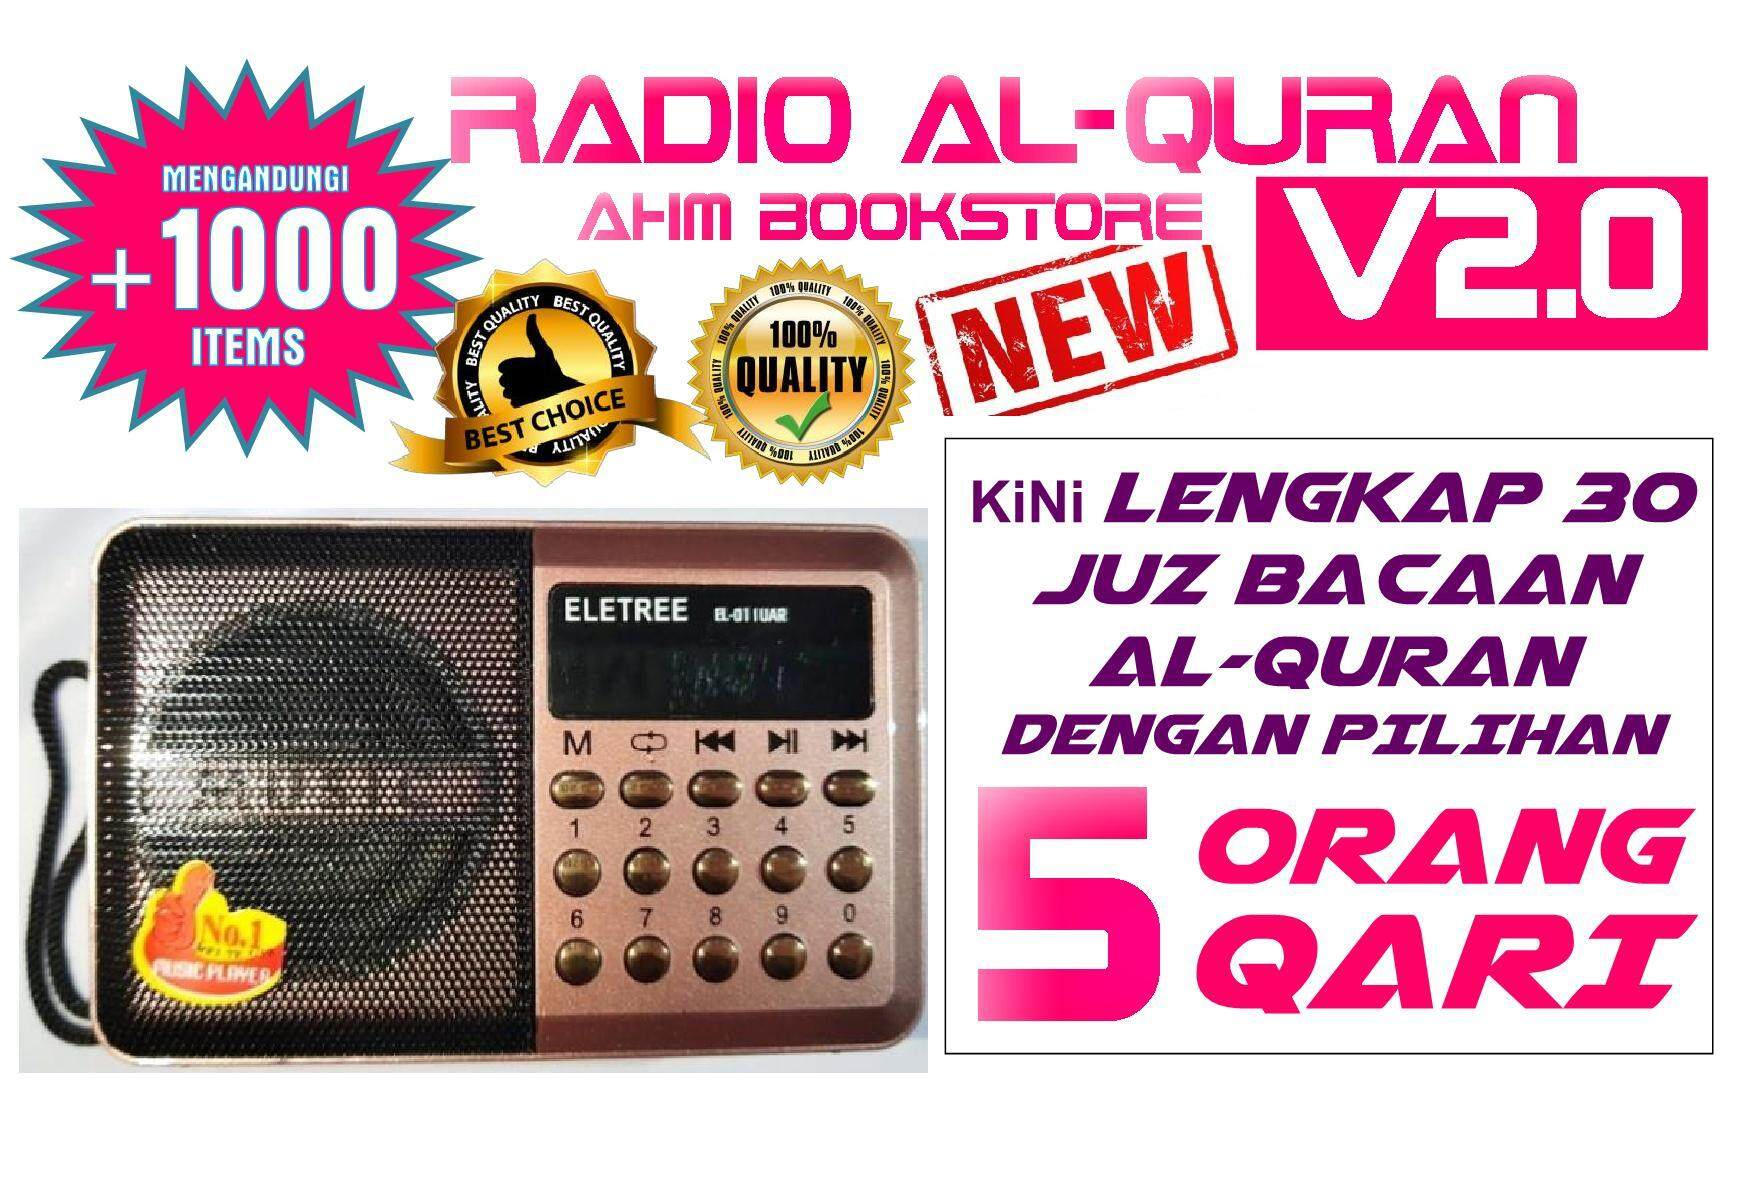 Radio Al Quran Al-Quran Ahm Bookstore V2.1 Complete 30 Juz With 5 Qari & Many More. By Ahm Bookstore.